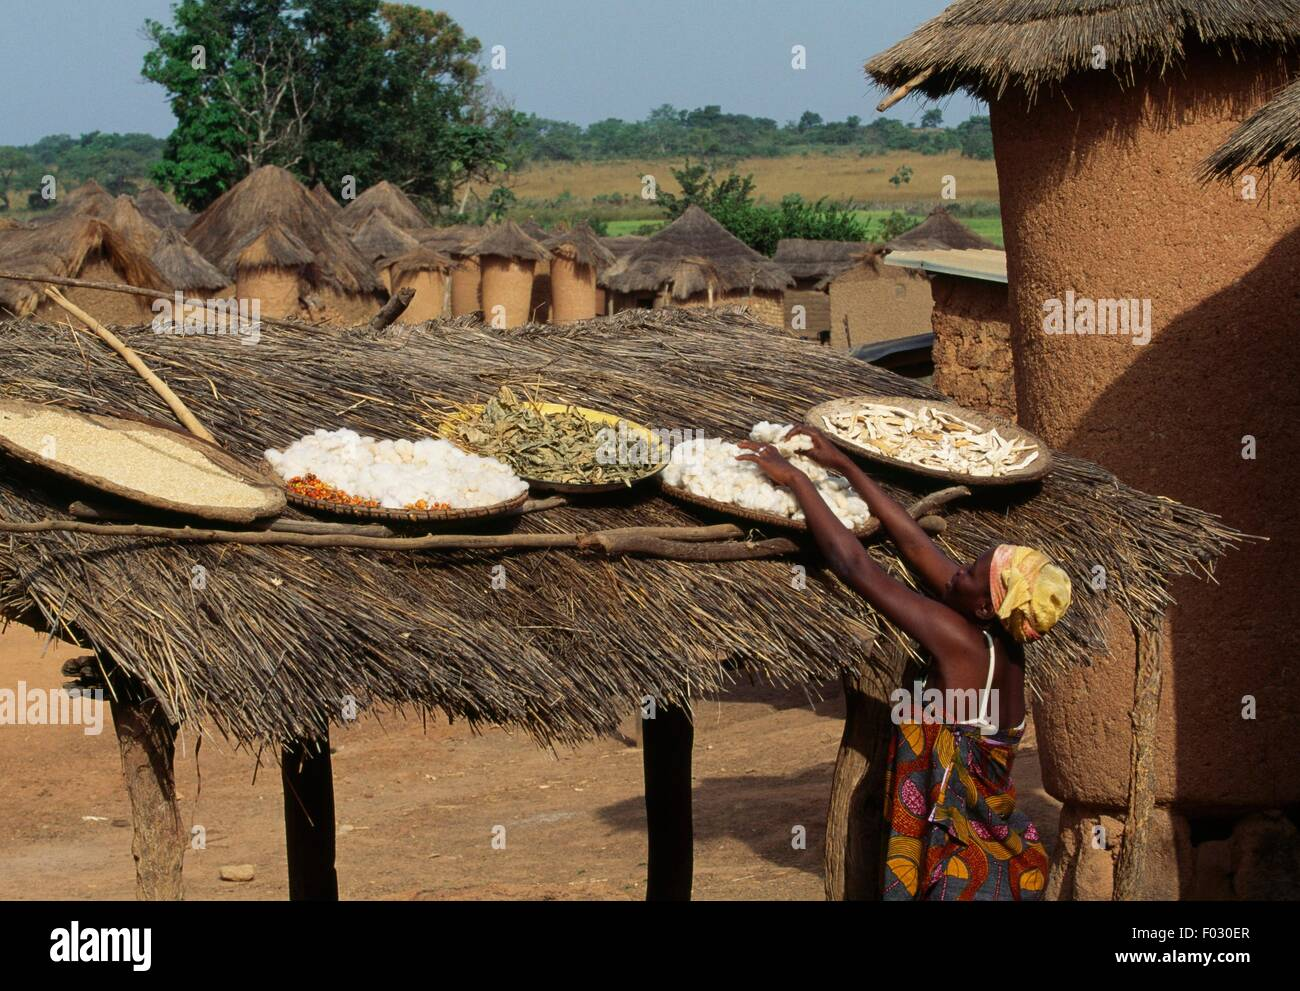 Food laid out in the sun on a straw roof, Senoufo, Ivory Coast. - Stock Image